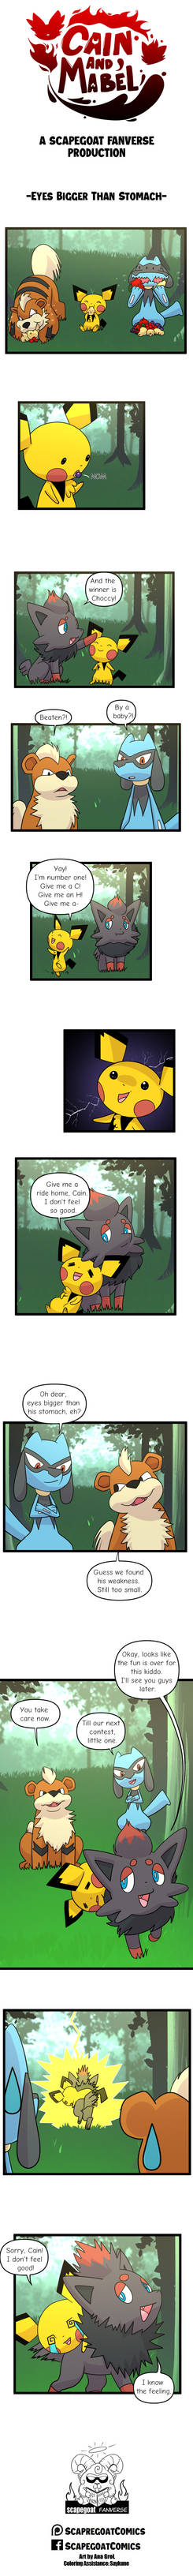 Cain and Mabel A Pokemon Webcomic Page 14